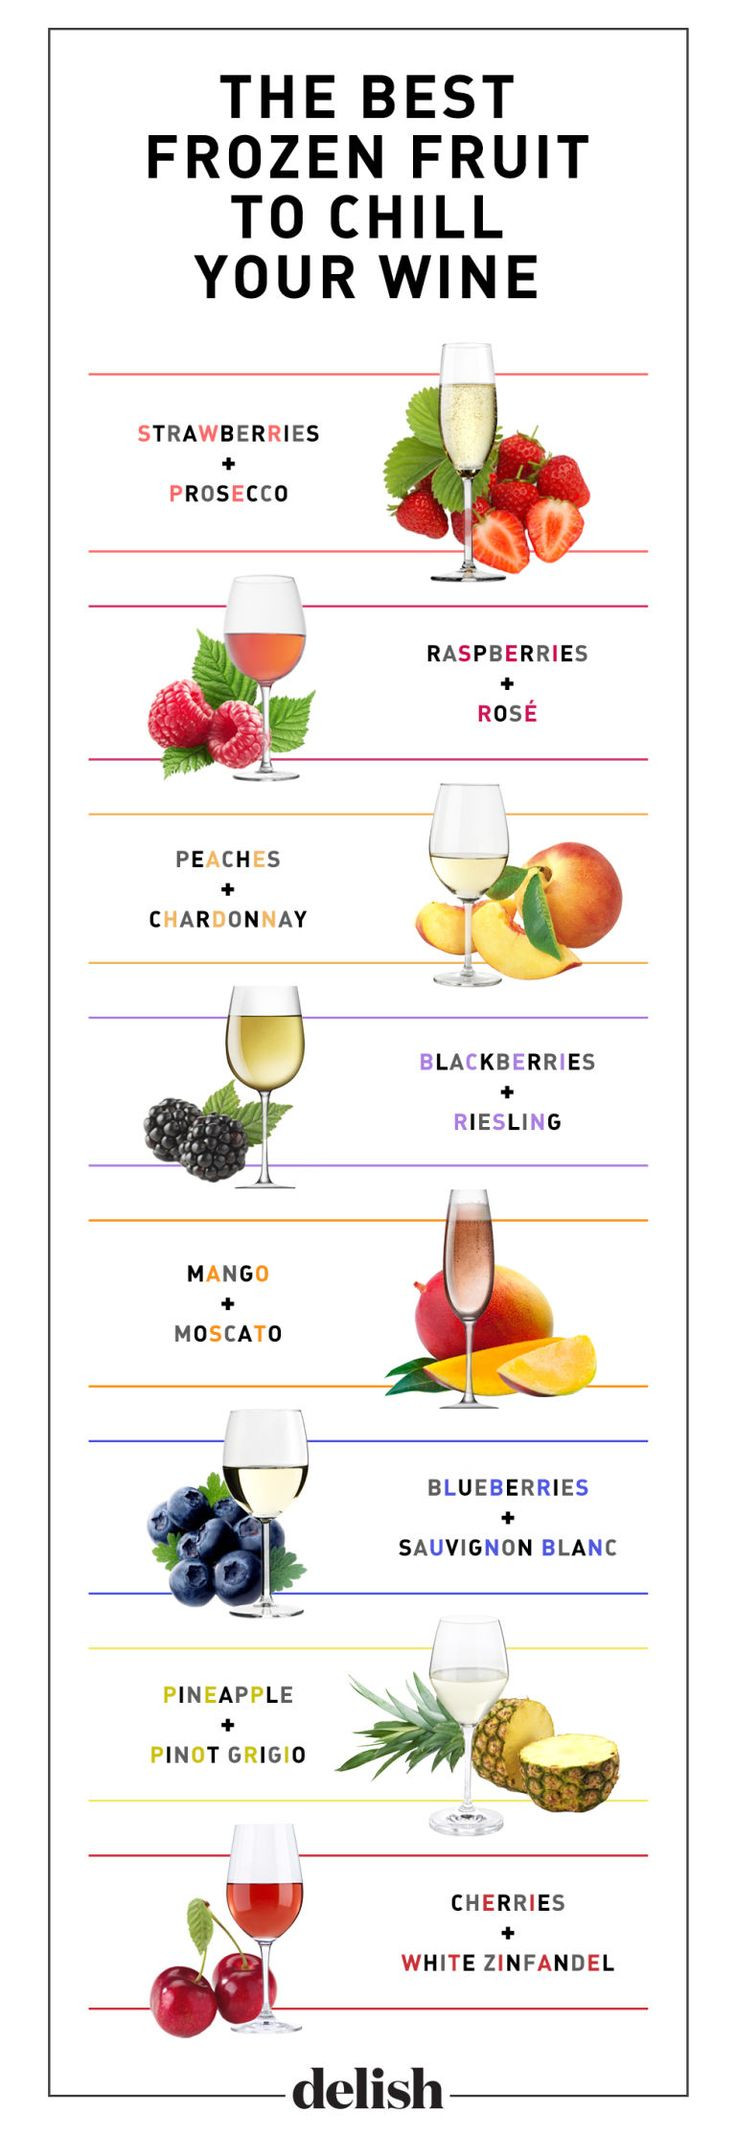 Frozen Fruit for Wine Chillers | House Beautiful AND Other amazing PARTY HACKS!